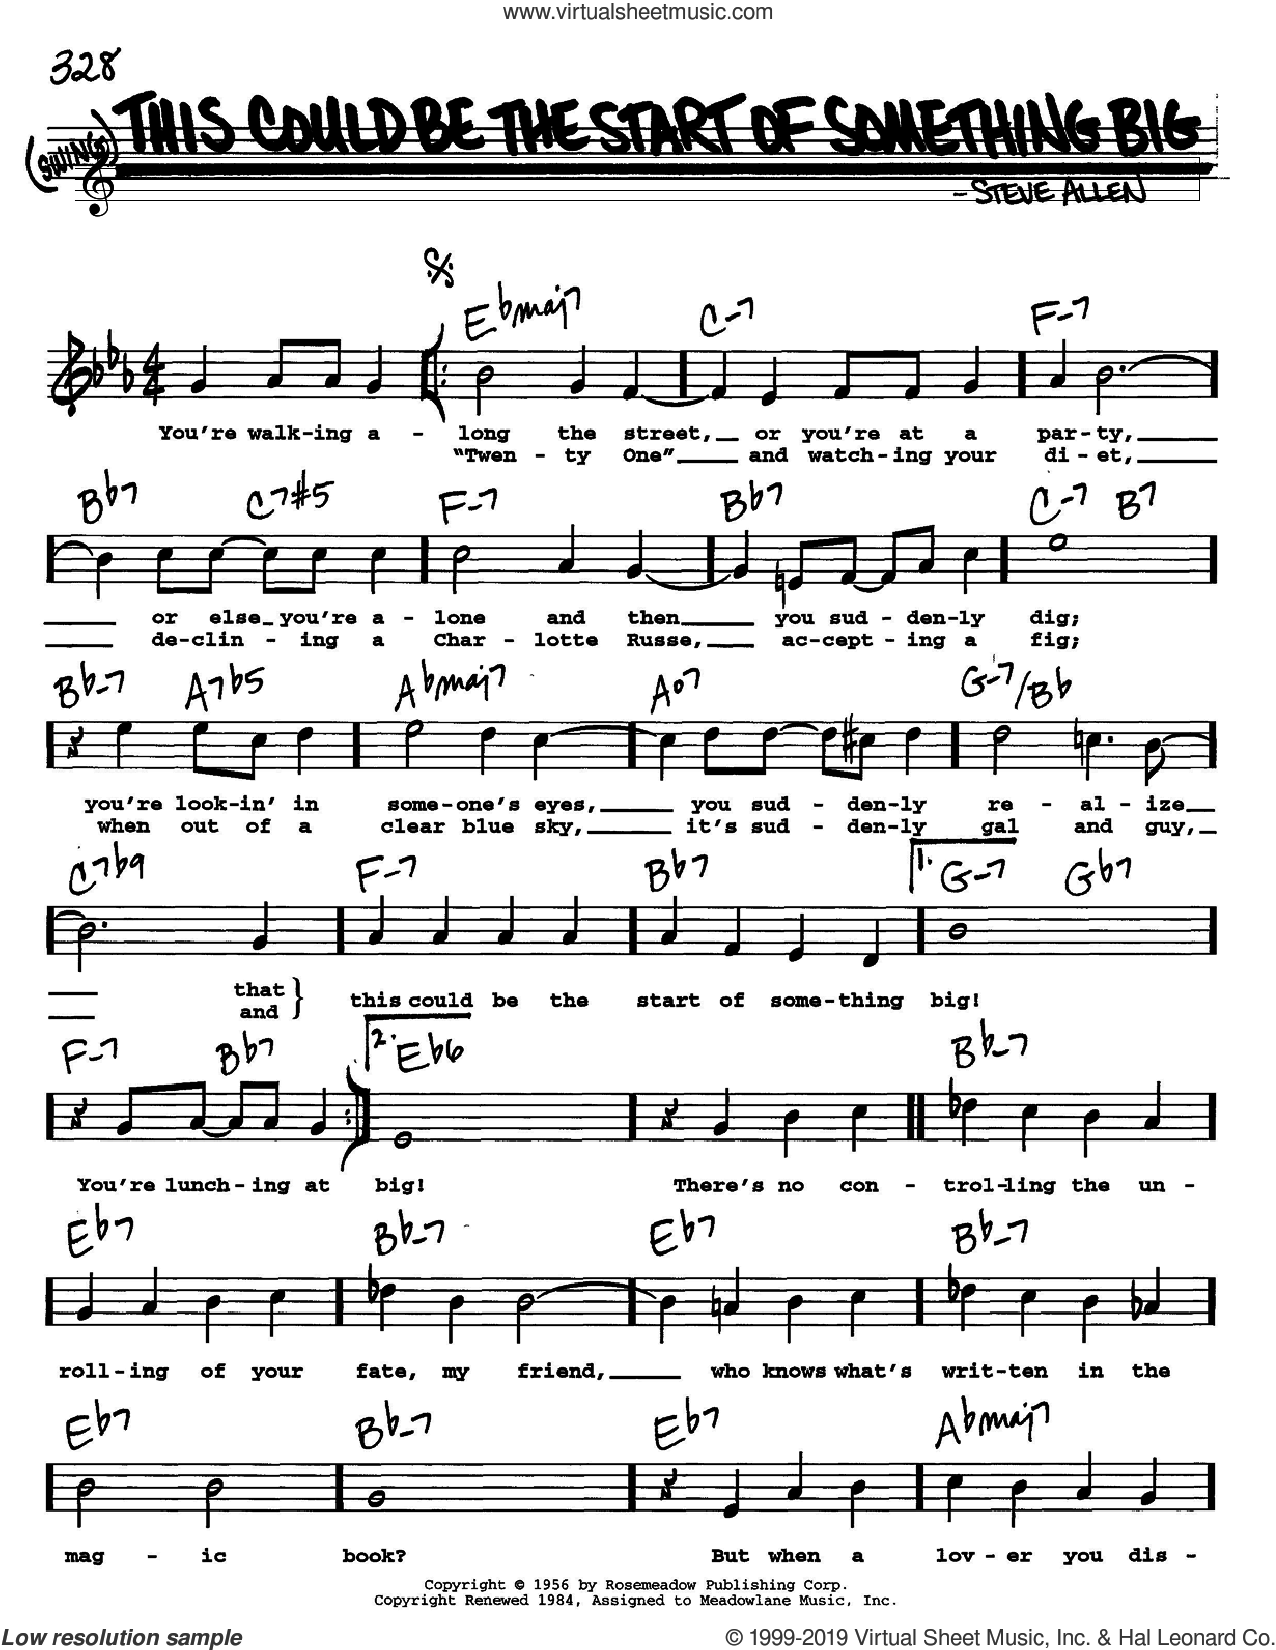 This Could Be The Start Of Something Big sheet music for voice and other instruments  by Steve Allen, intermediate skill level